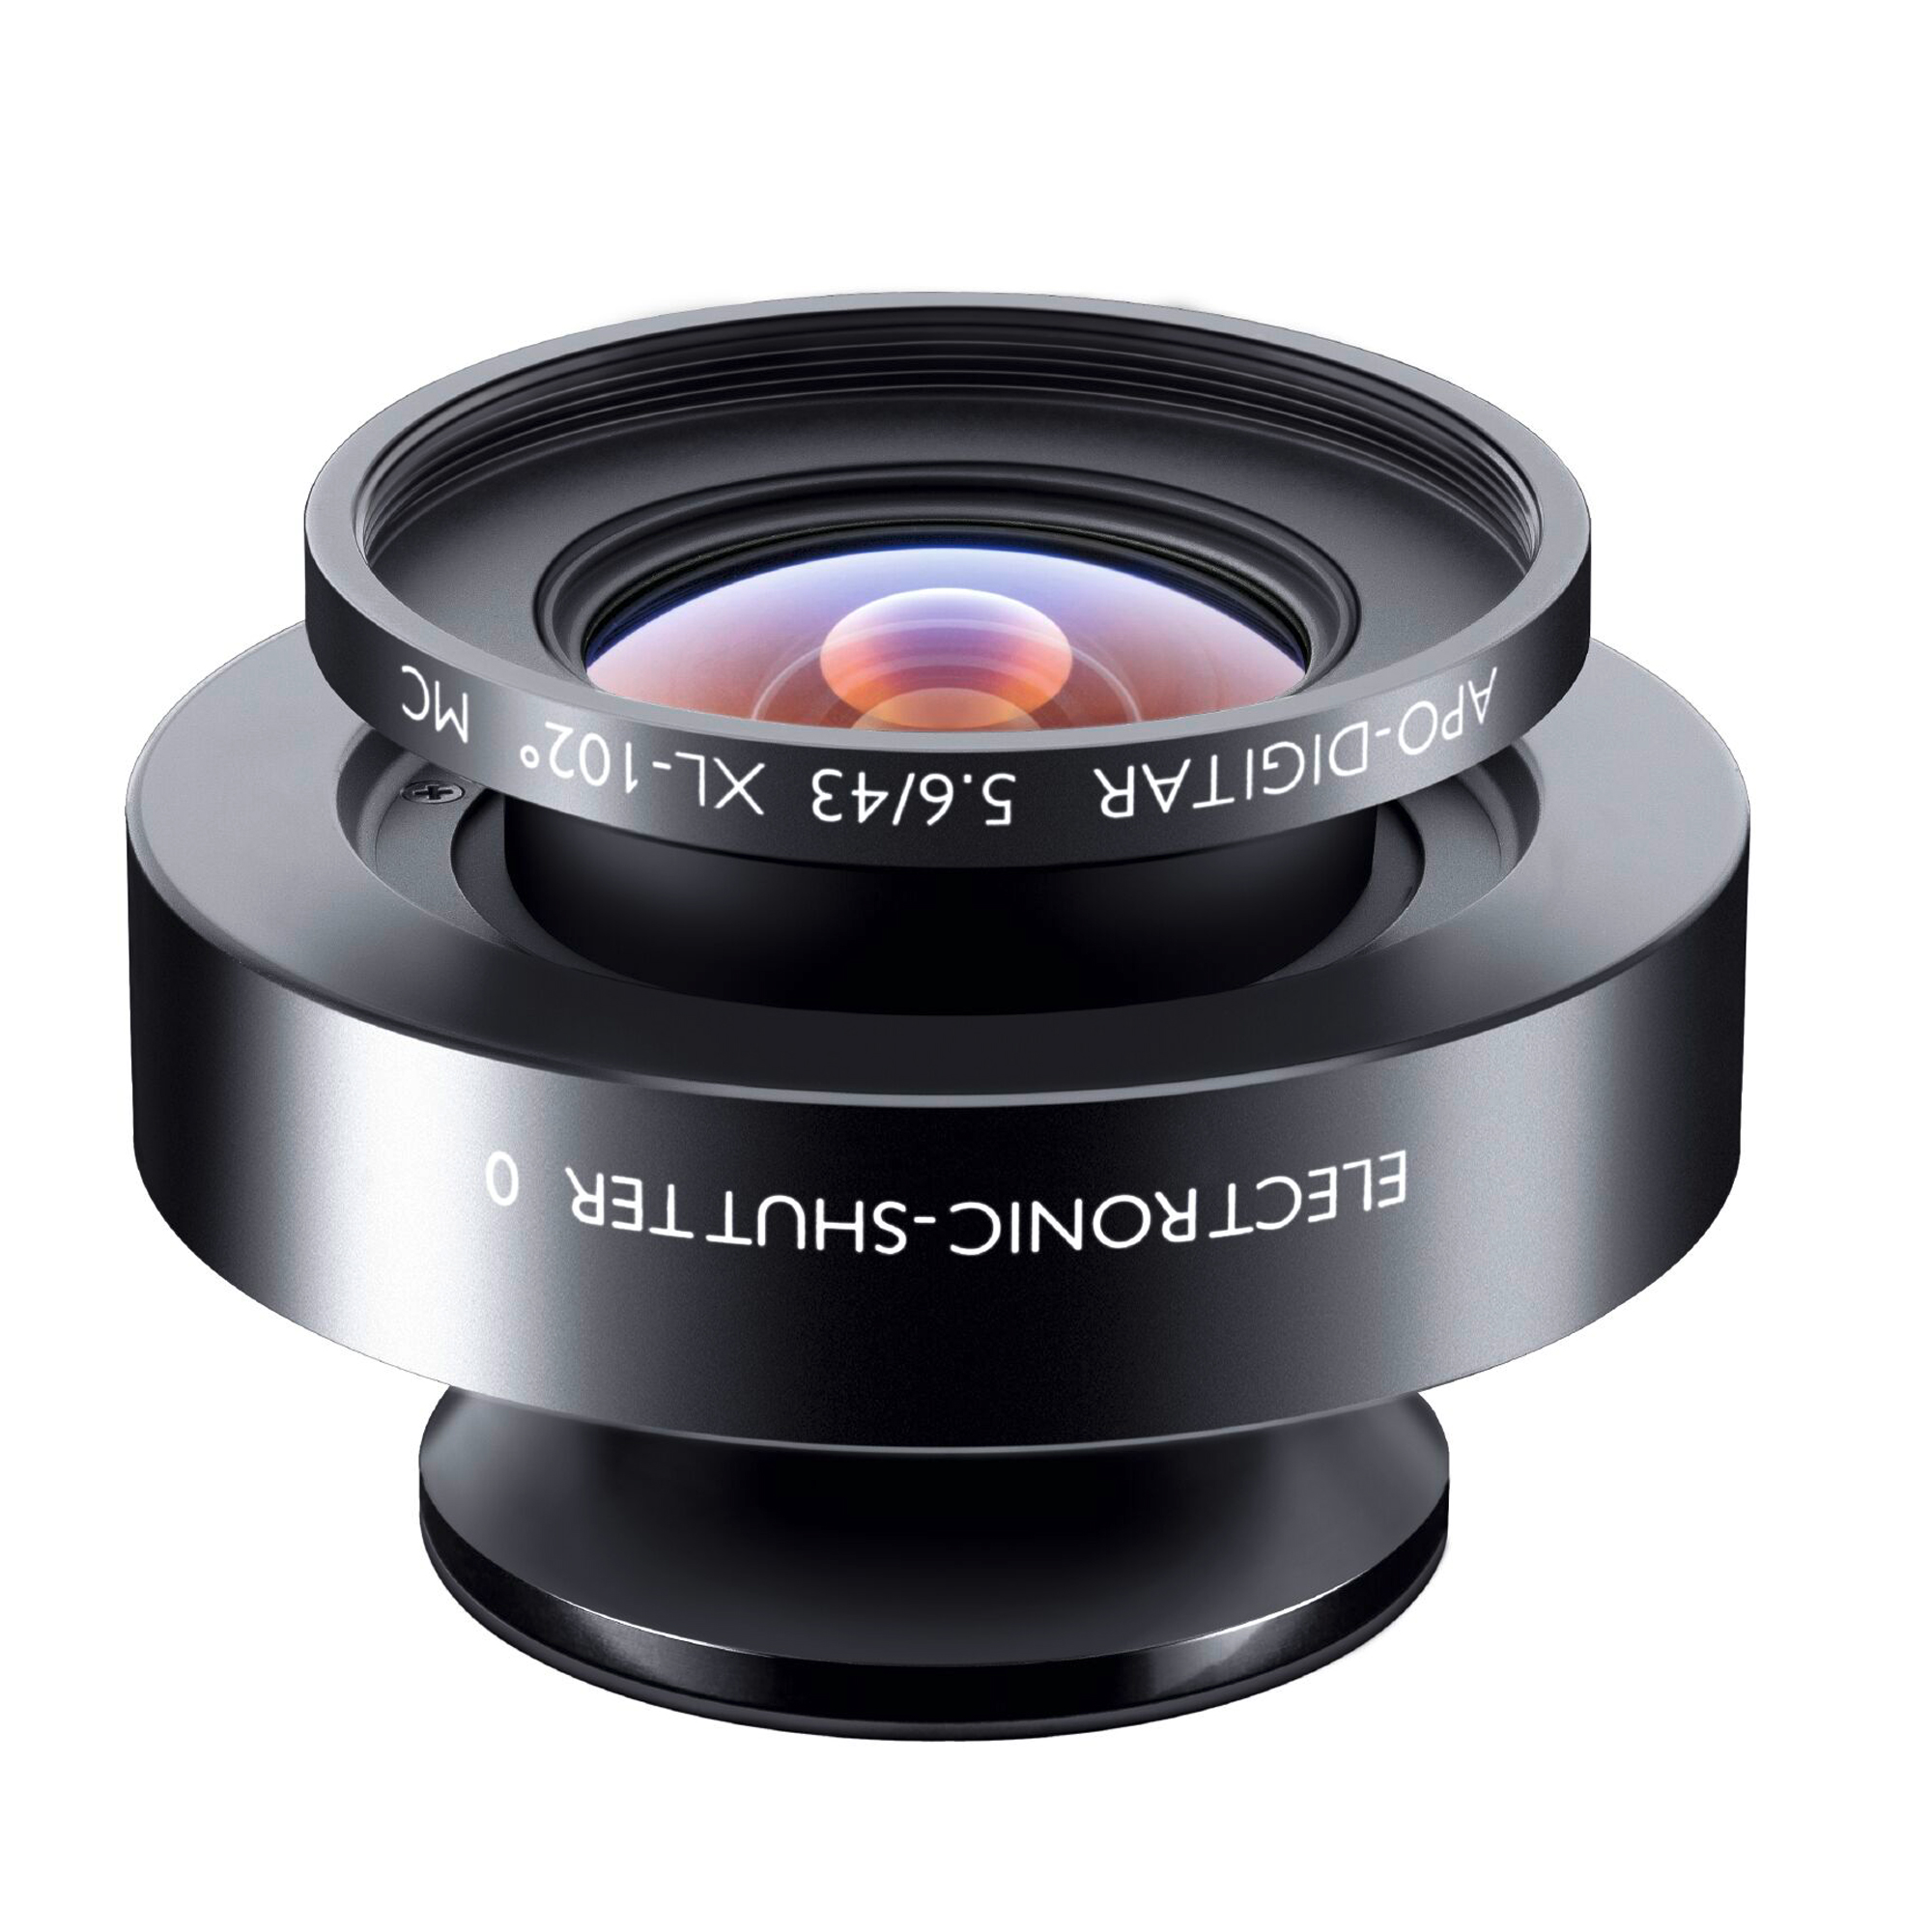 Schneider 43mm f/5.6 Apo-Digitar Lens with Copal Shutter